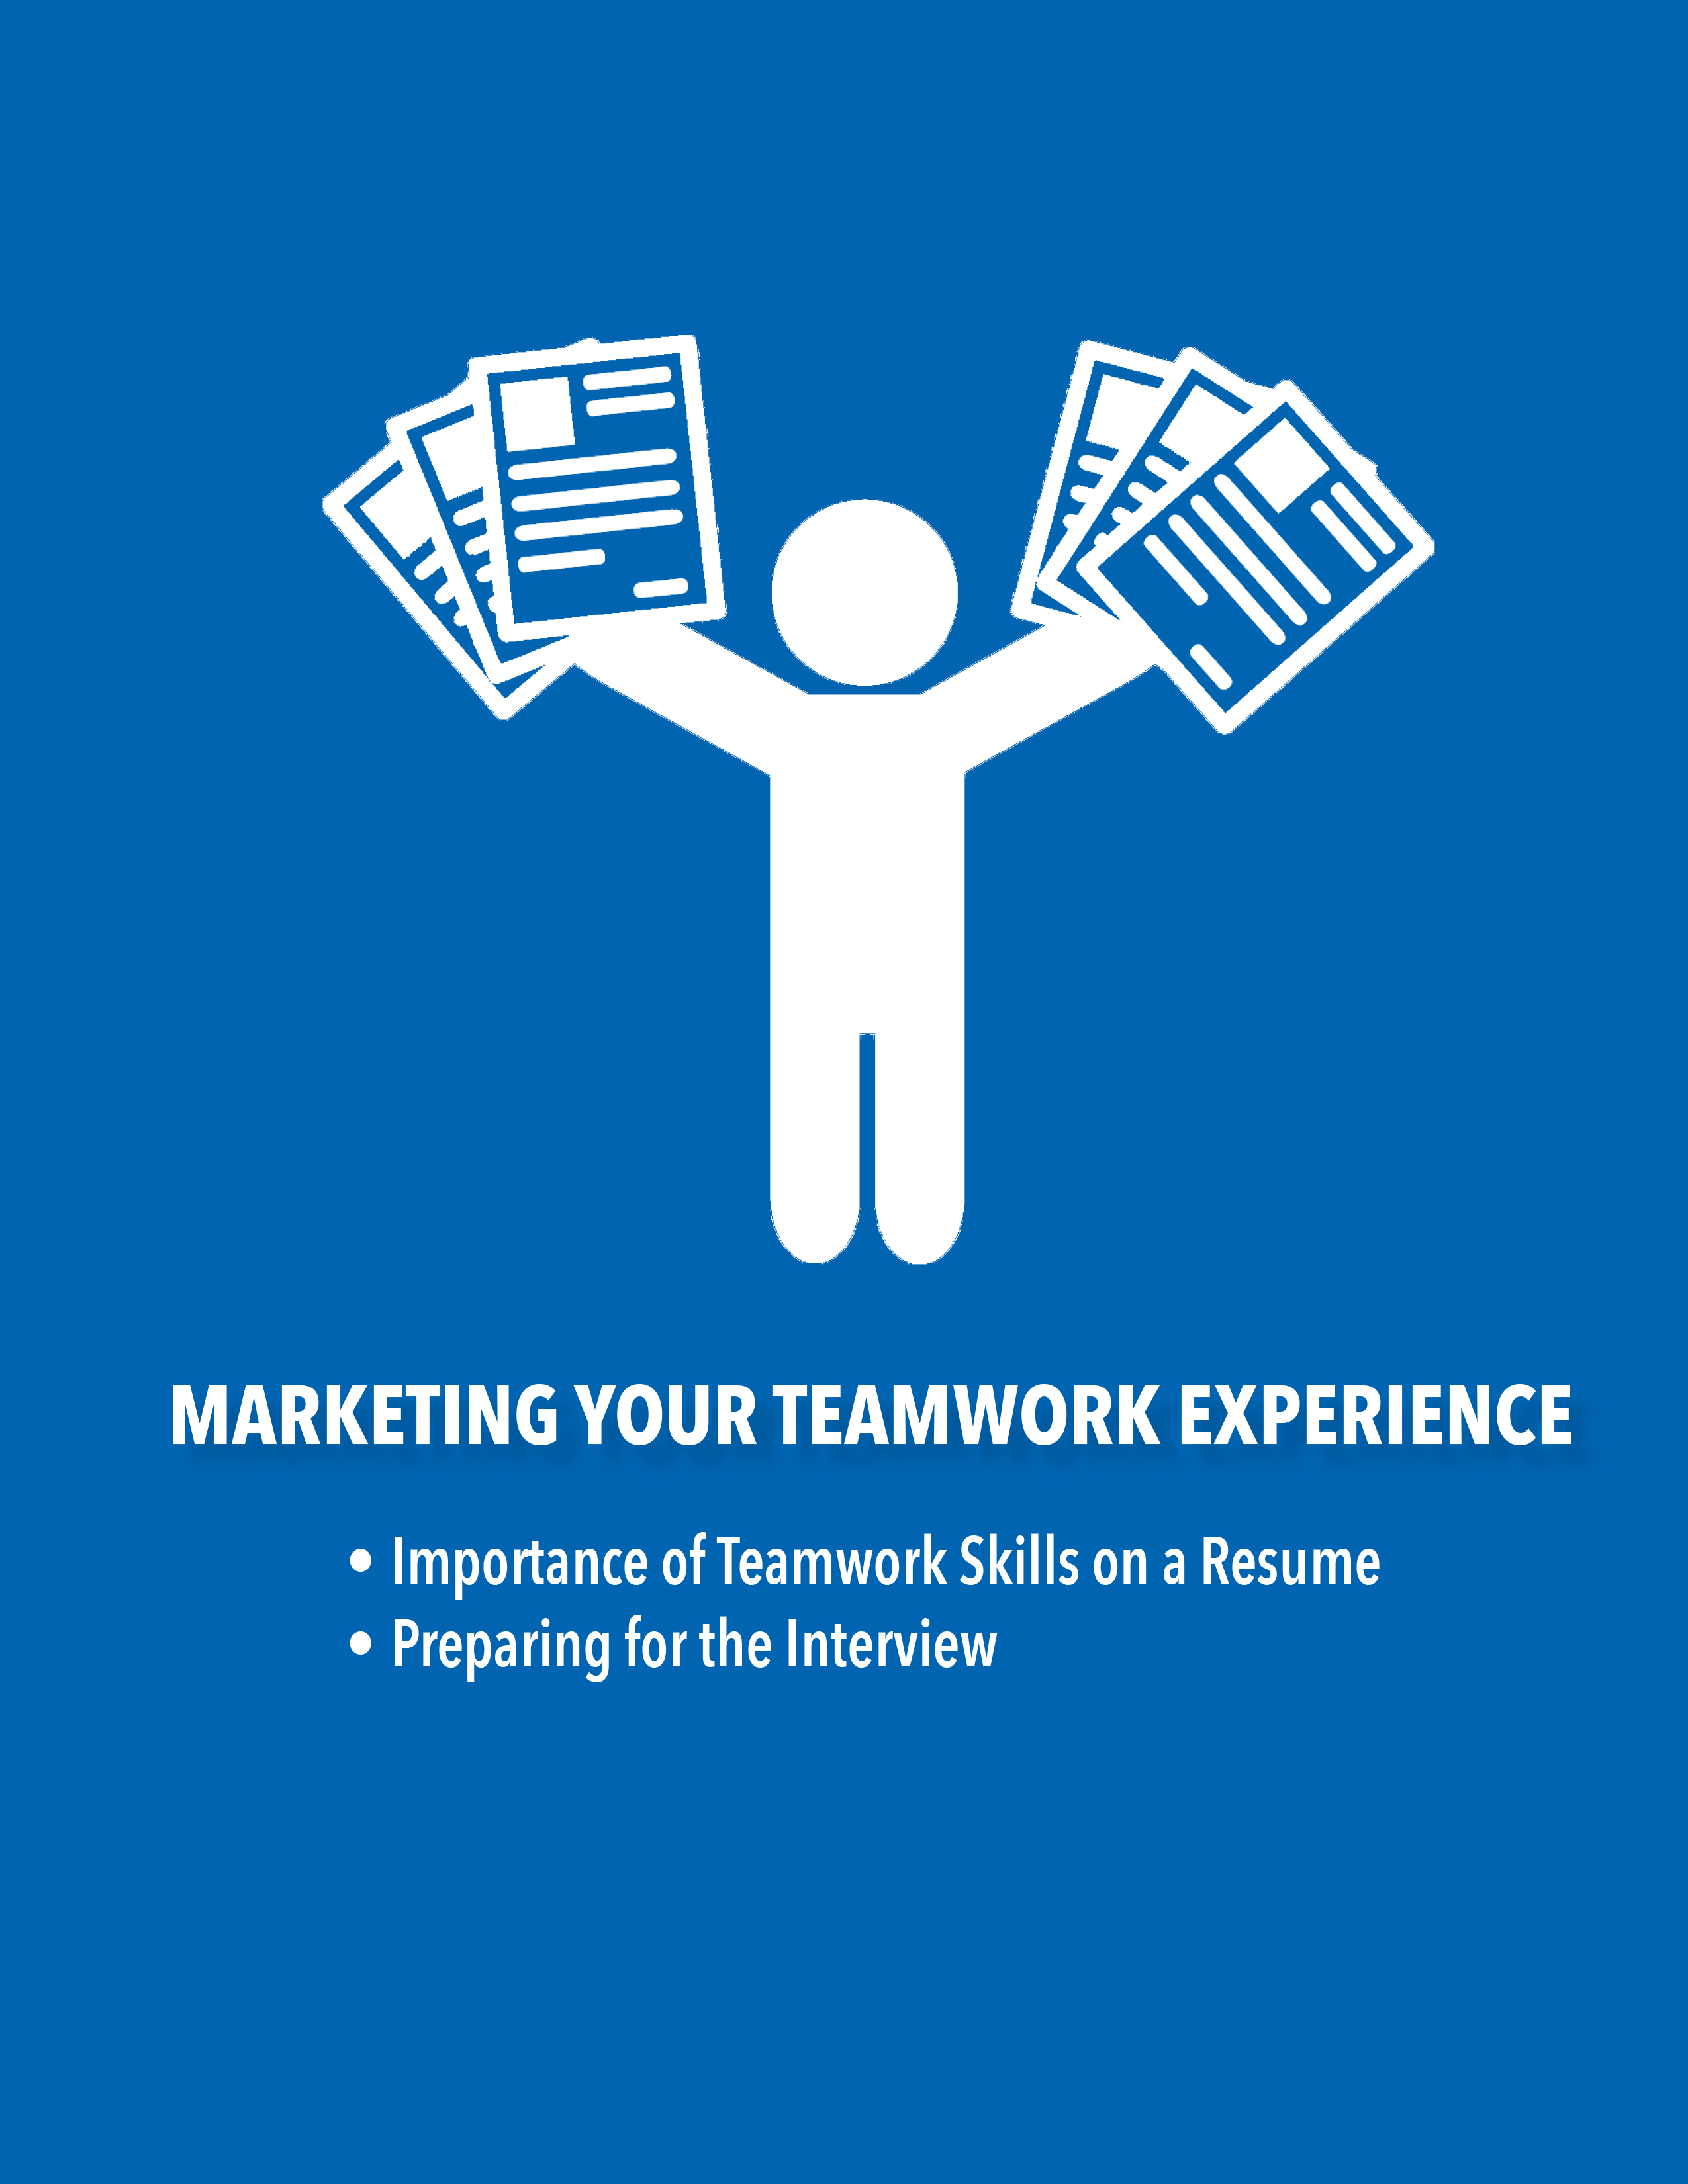 Marketing Your Teamwork Experience: Importance of Teamwork Skills on a Resume, Preparing for the Interview